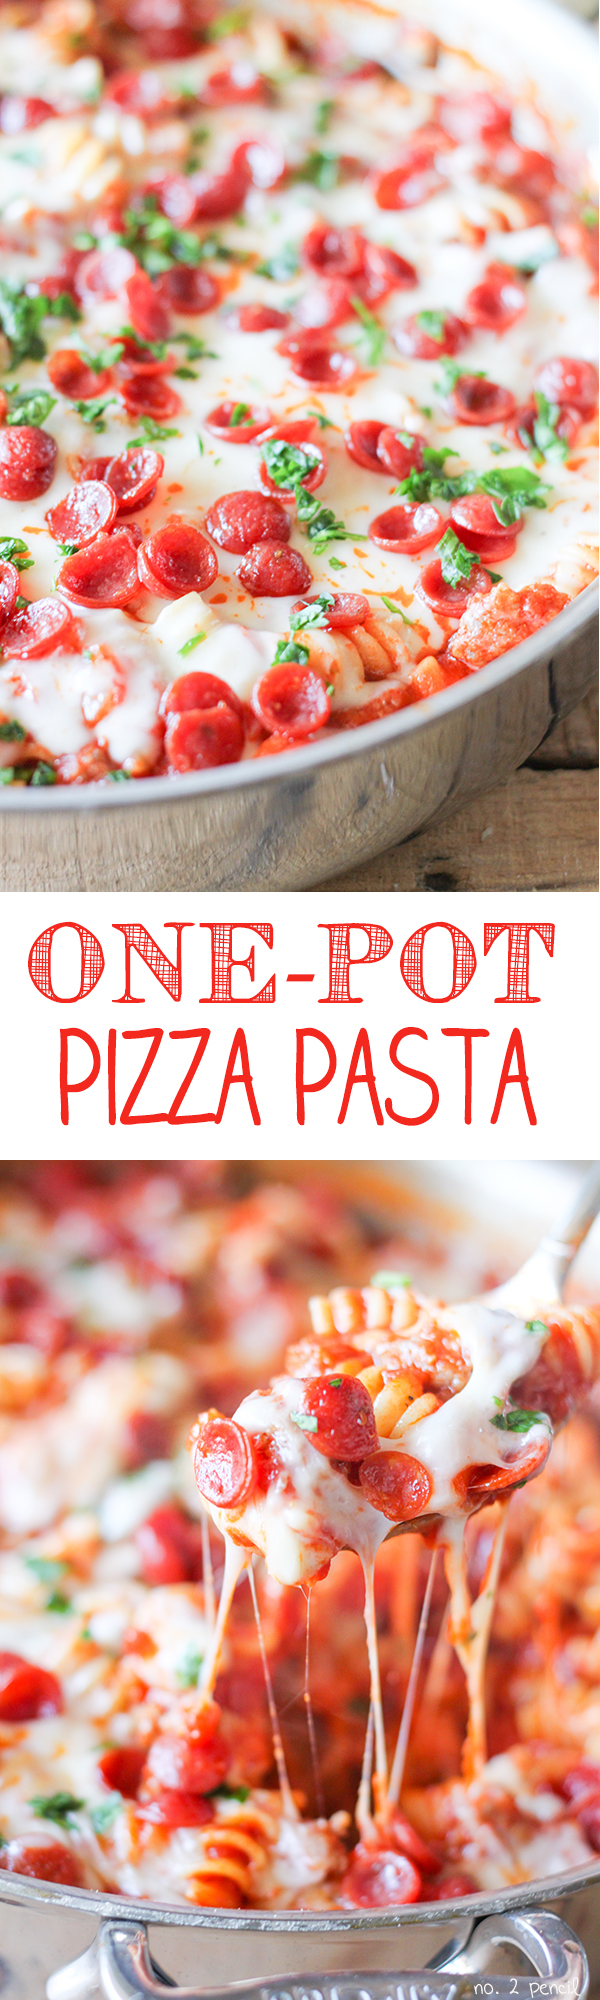 One-Pot Pizza Pasta